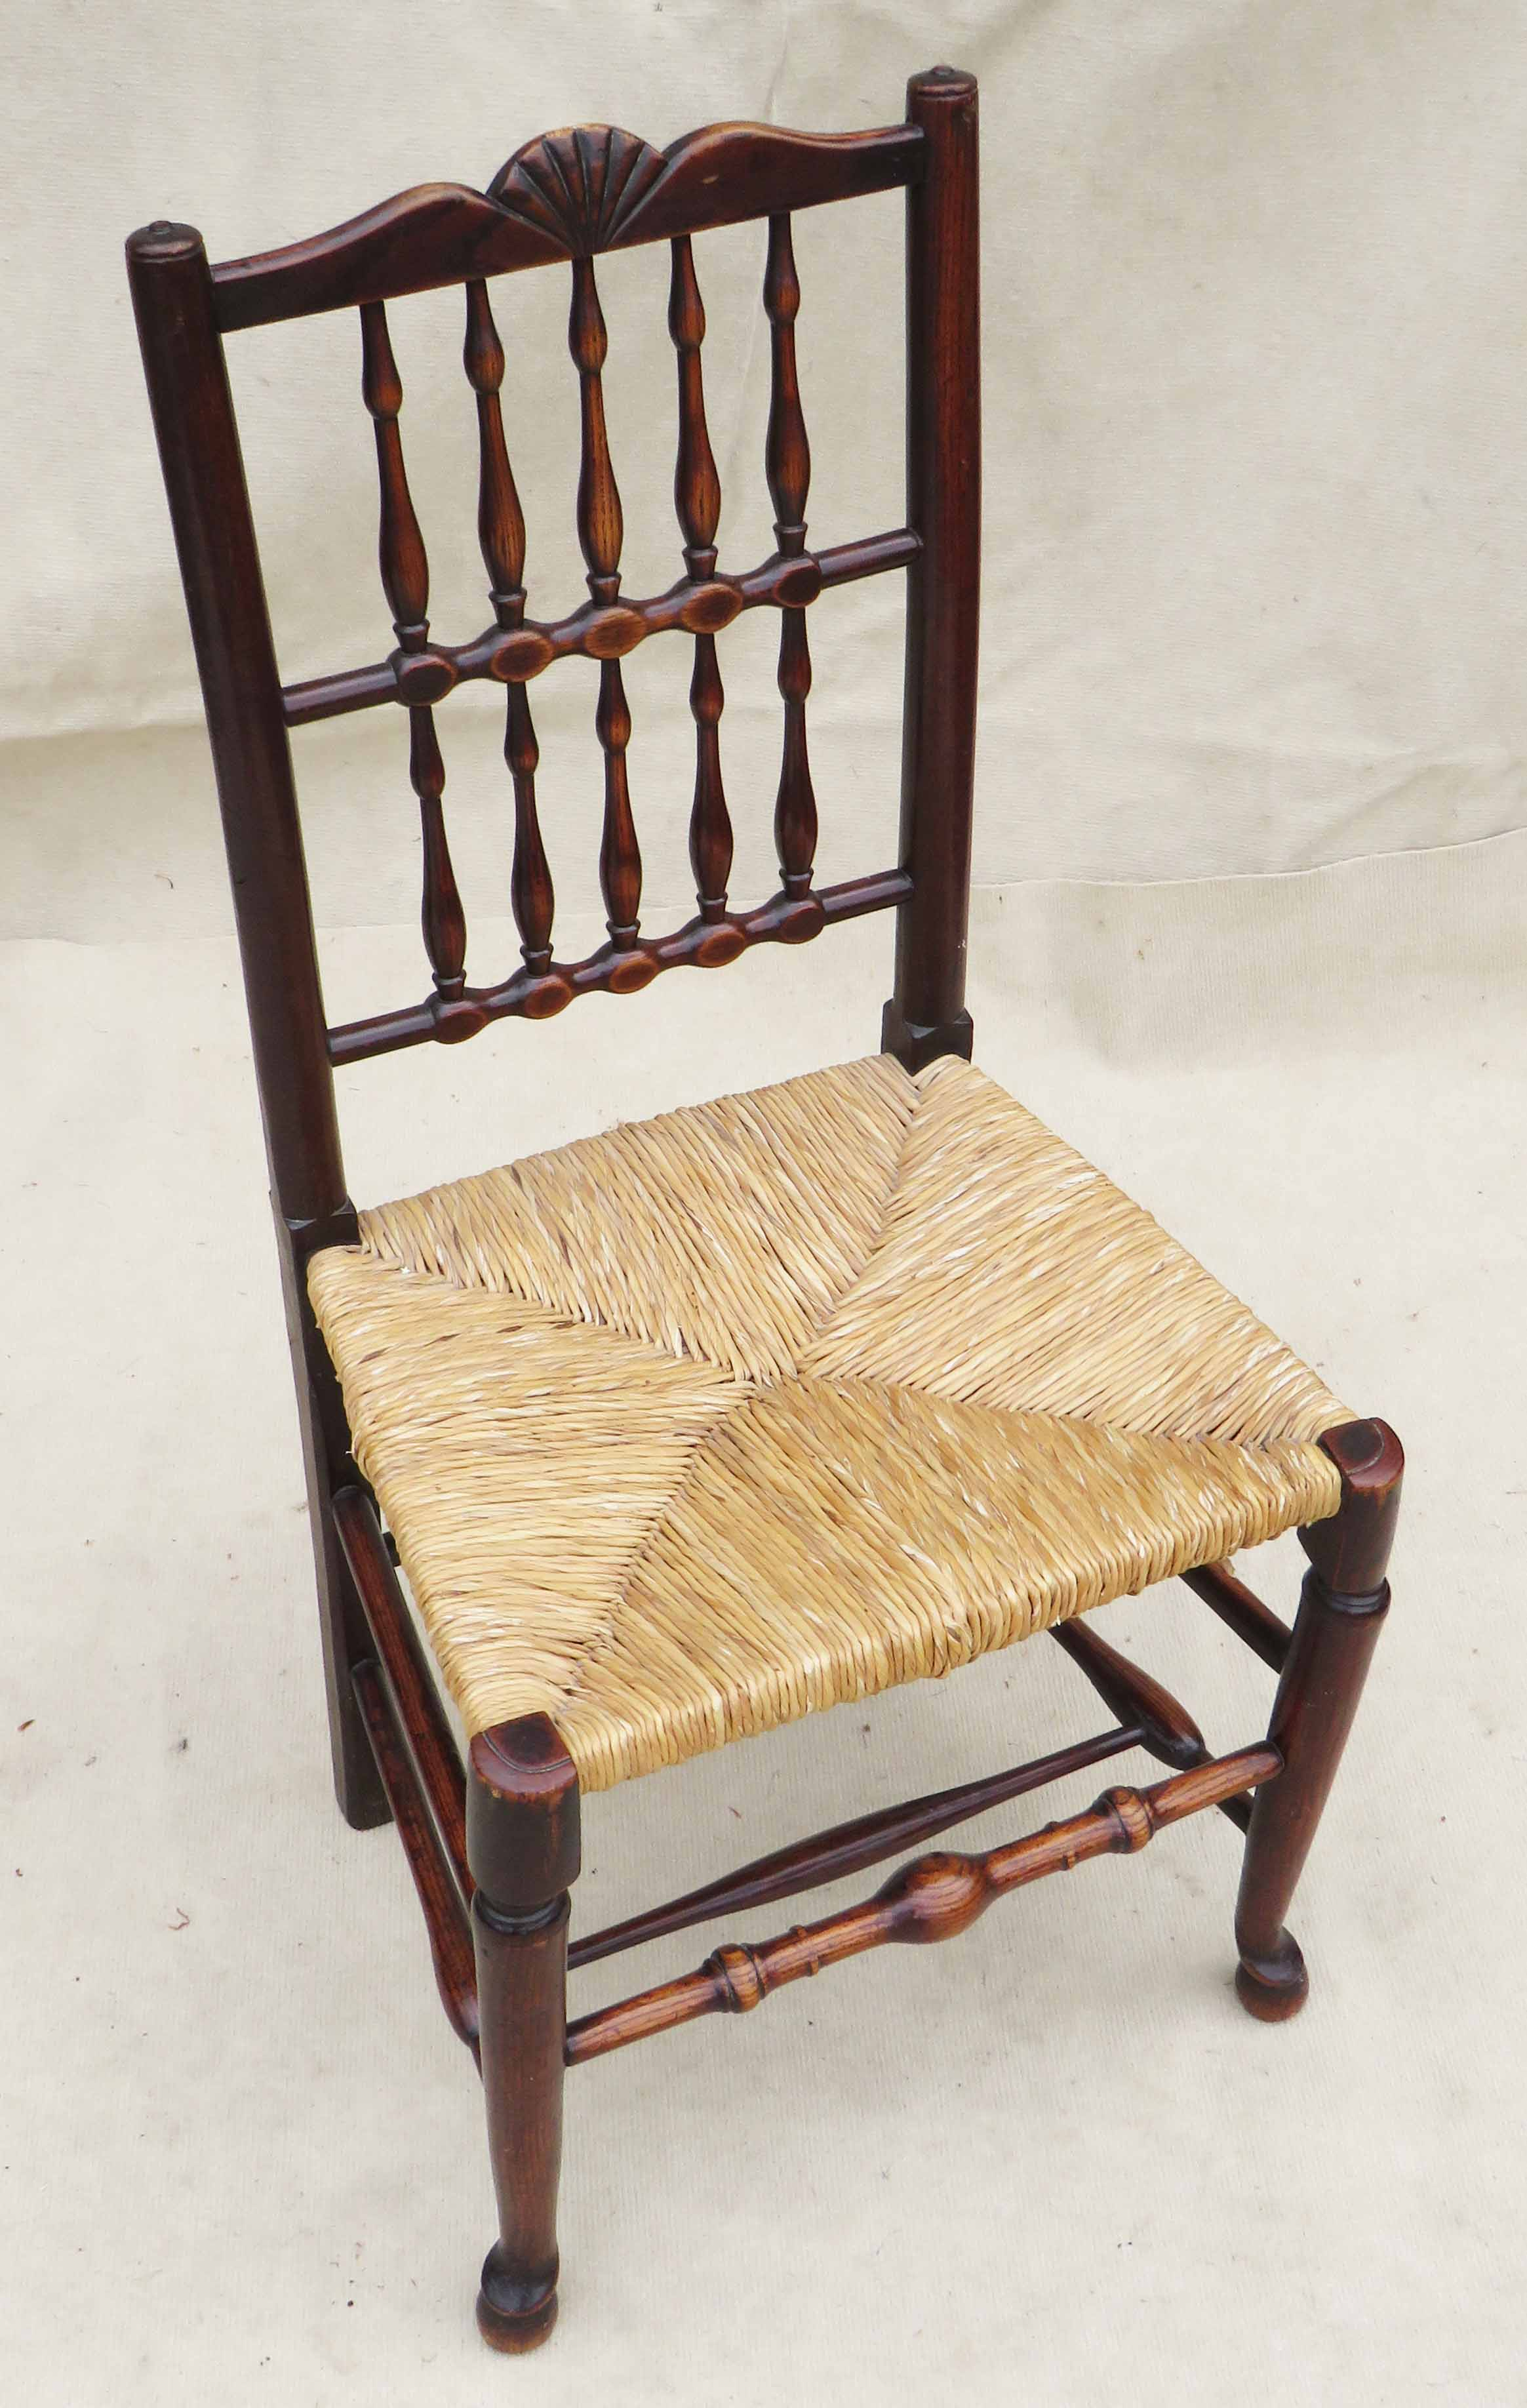 Matched Set Of 8 Spindle Back Dining Chairs, Early 19th Century - Image 10 of 12